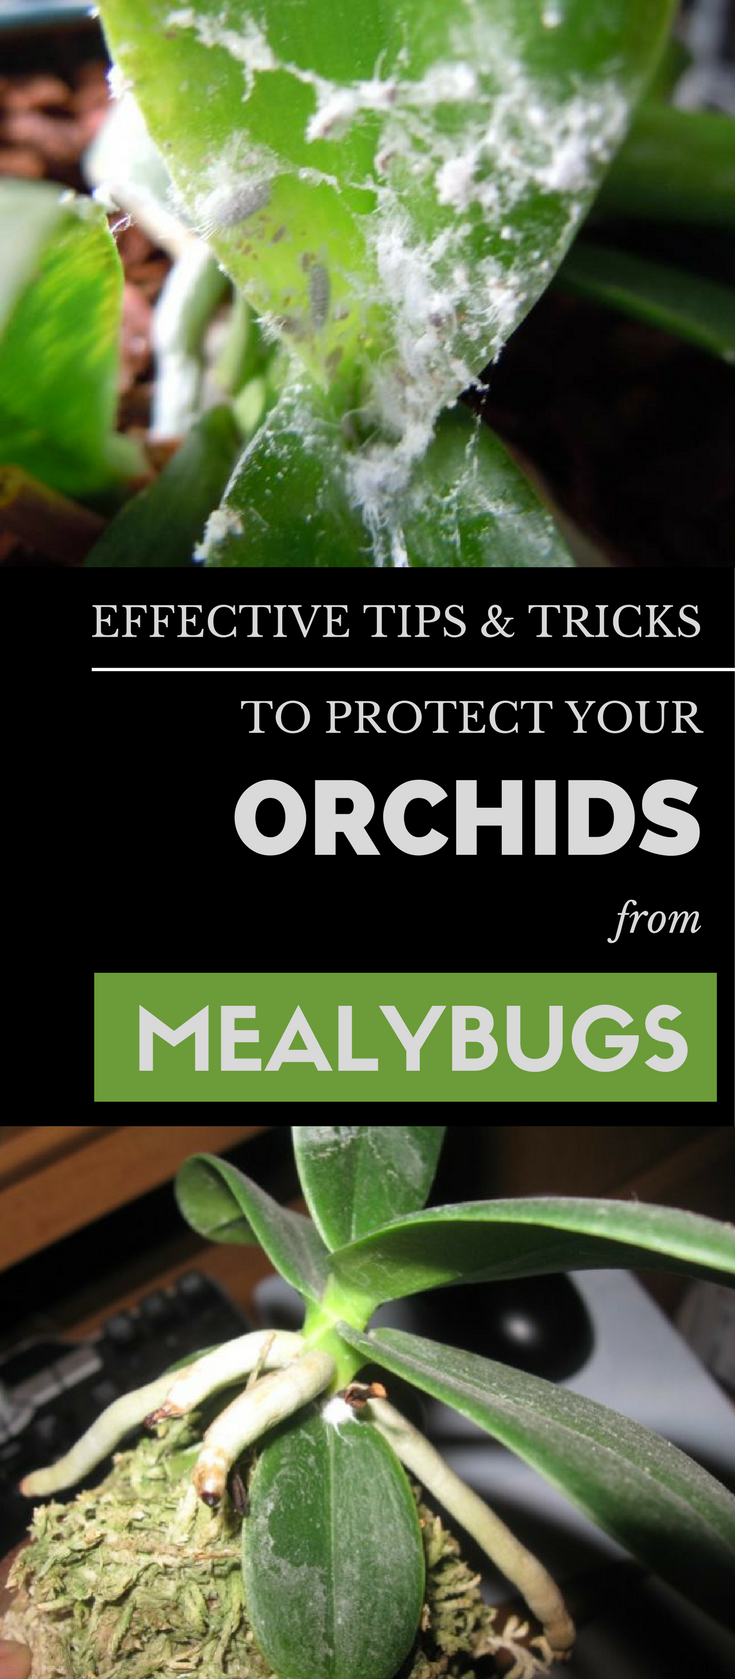 How To Get Rid Of Mildew >> Effective Tips & Tricks to Protect Your Orchids From Mealybugs - GetGardenTips.com